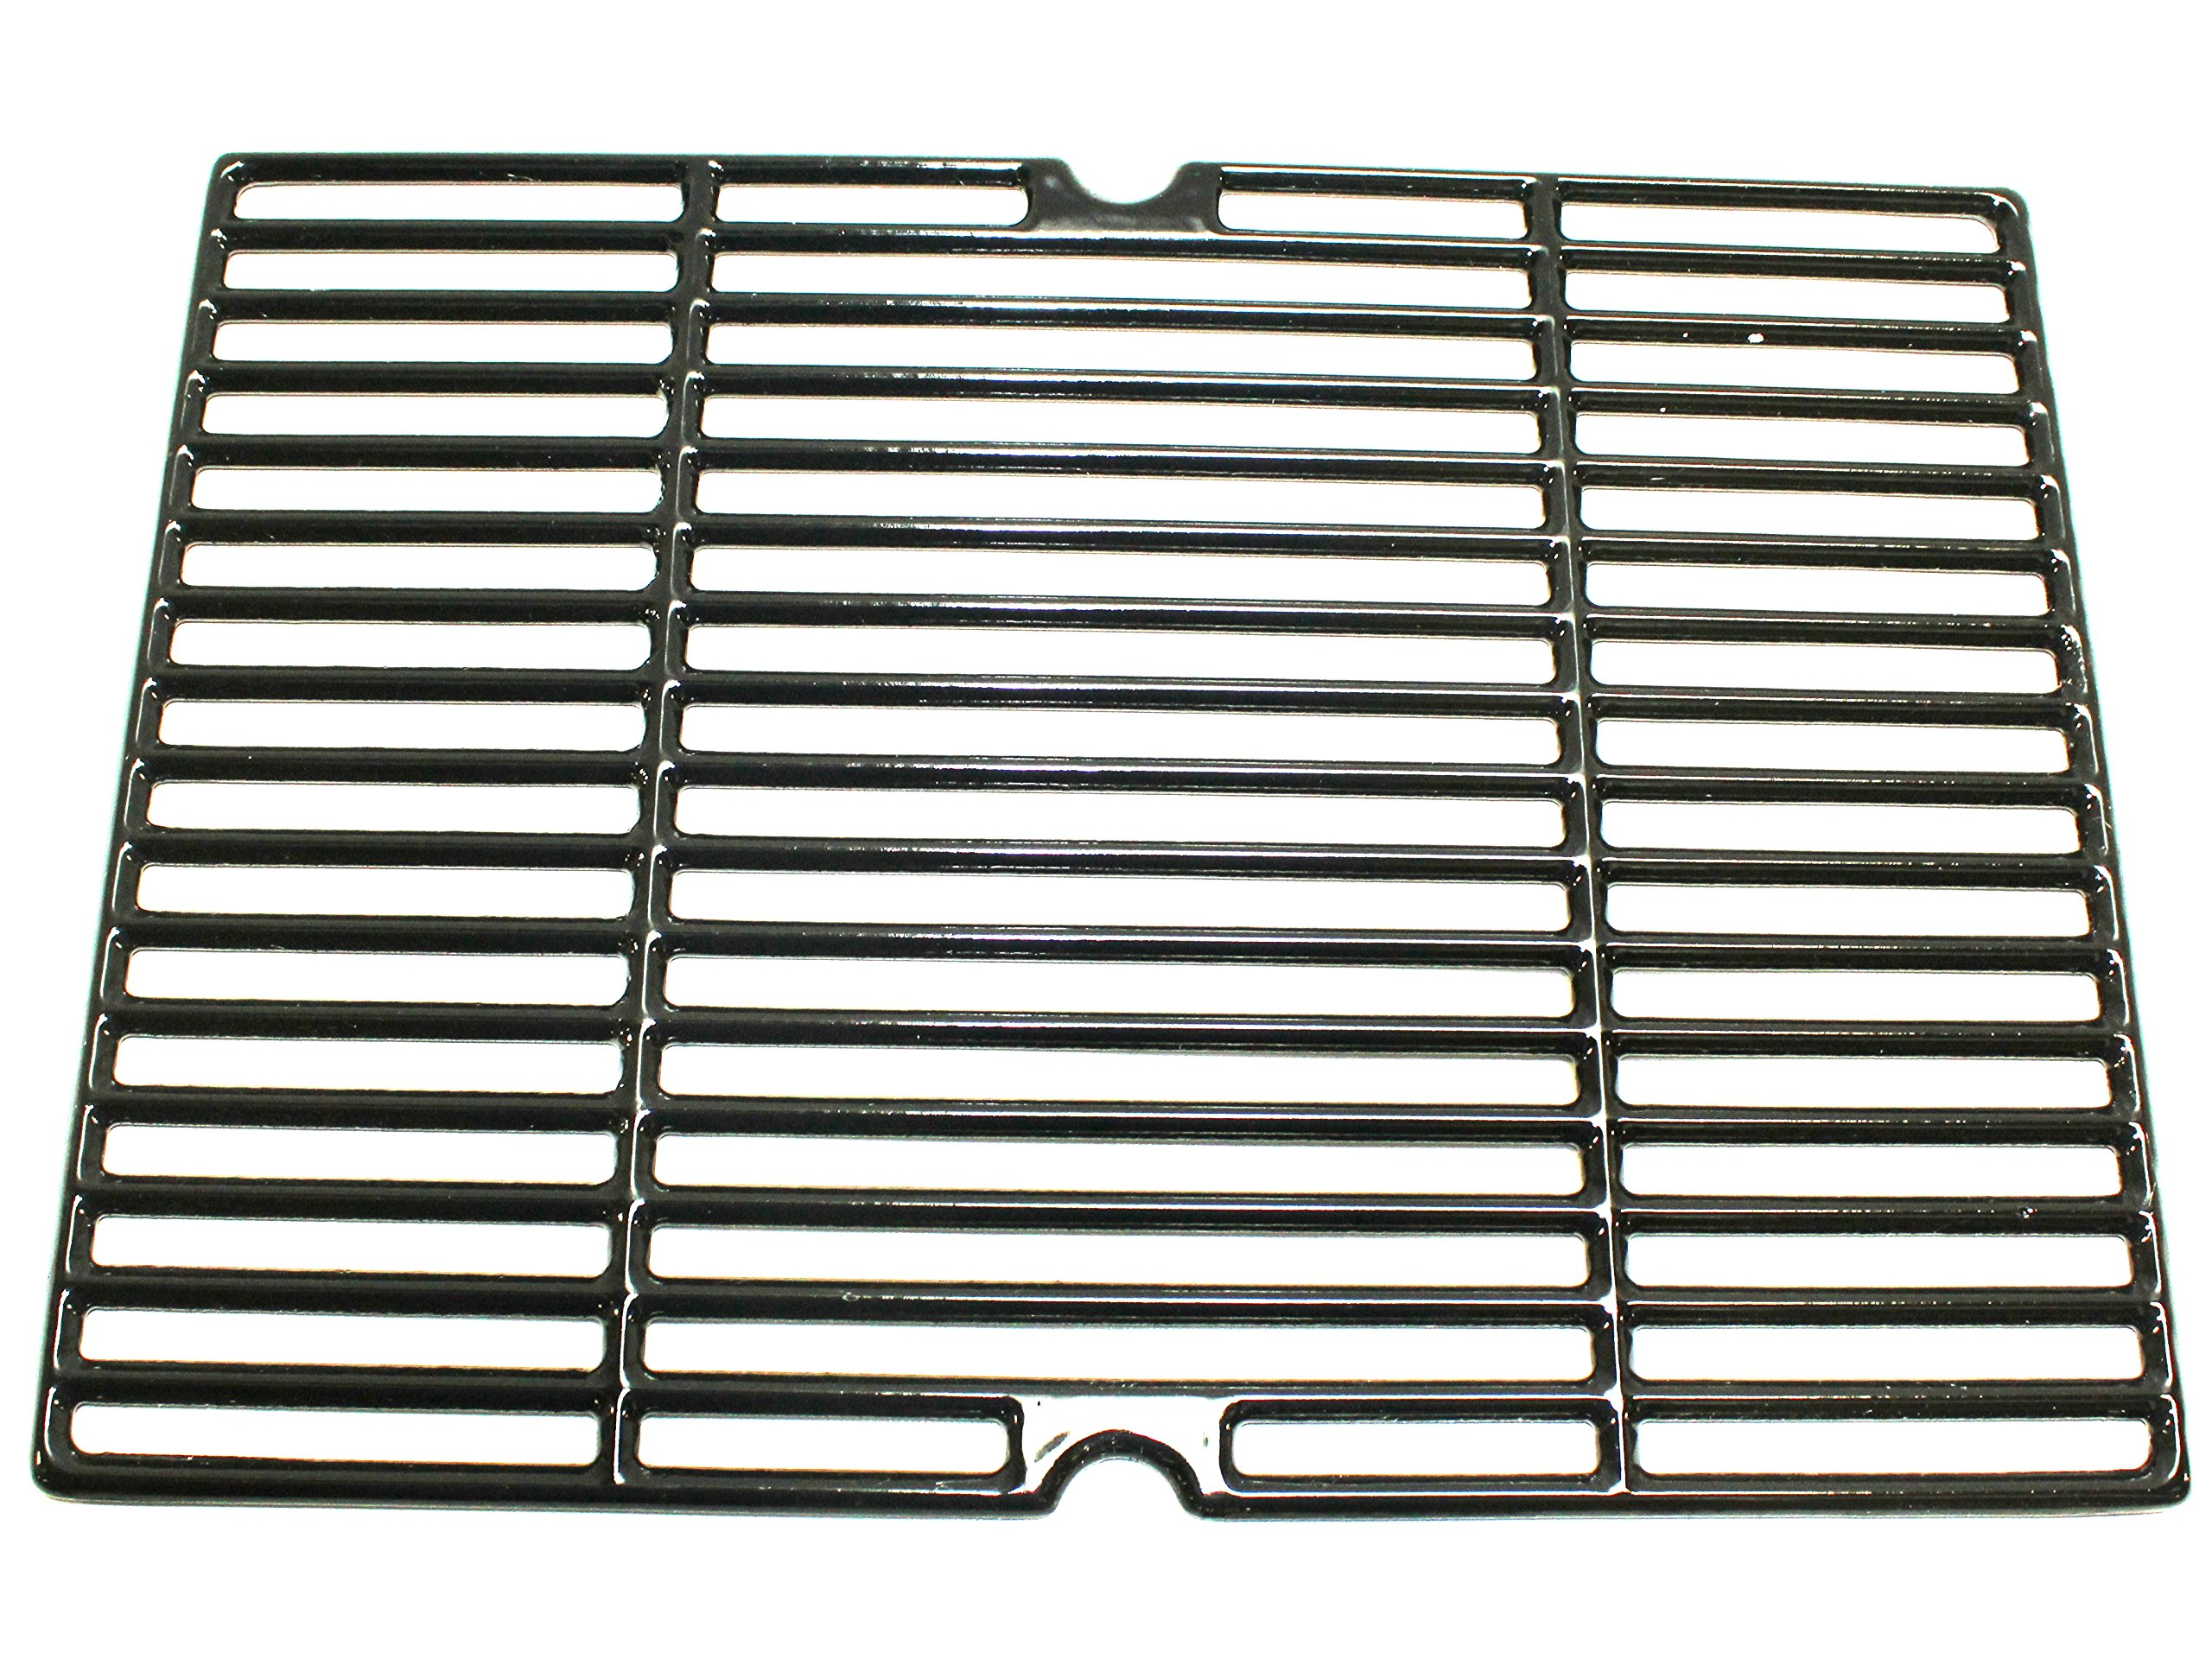 Char-Broil Cooking Grate (G515-00B5-W1)